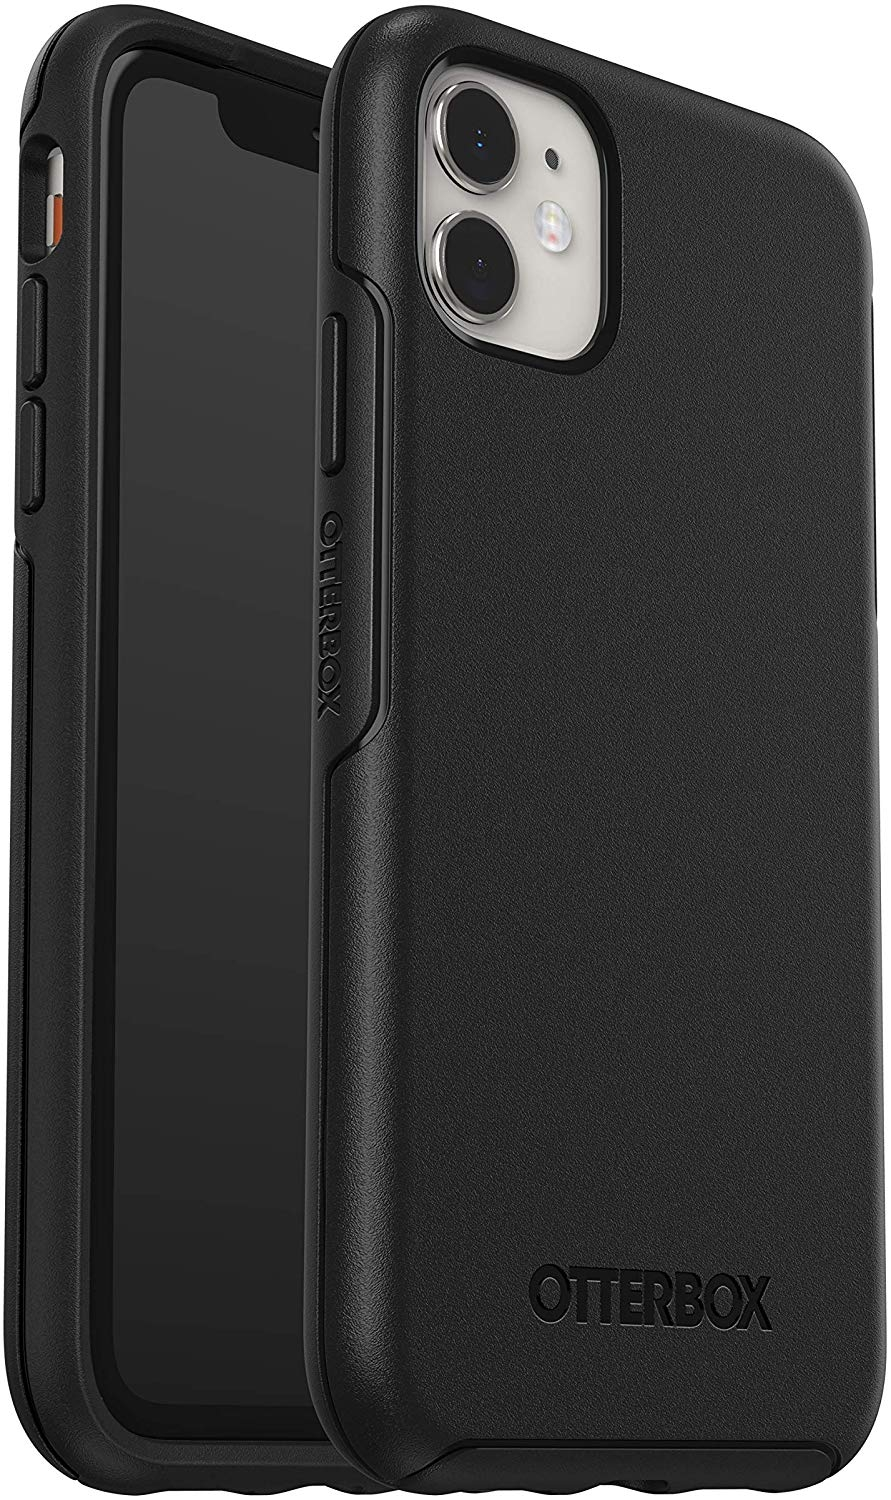 Otterbox Symmetry Series - Θήκη iPhone 11 - Black (77-62794)